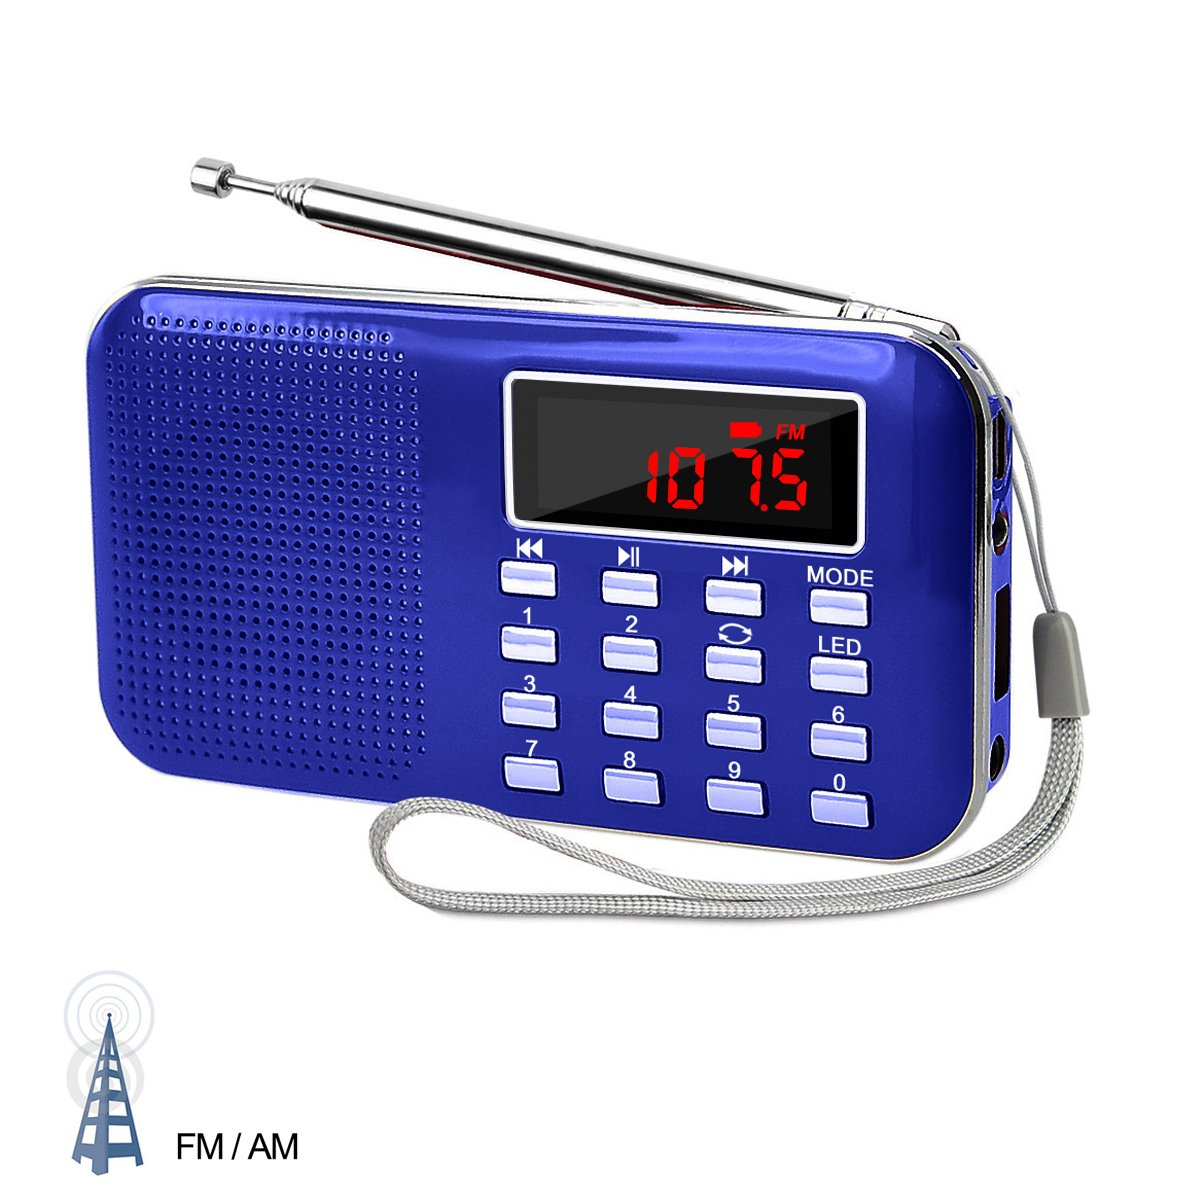 LEFON Mini Digital AM FM Radio Media Speaker MP3 Music Player Support TF Card/USB Disk with LED Screen Display and Emergency Flashlight Function (Blue-Upgraded) by Lefon